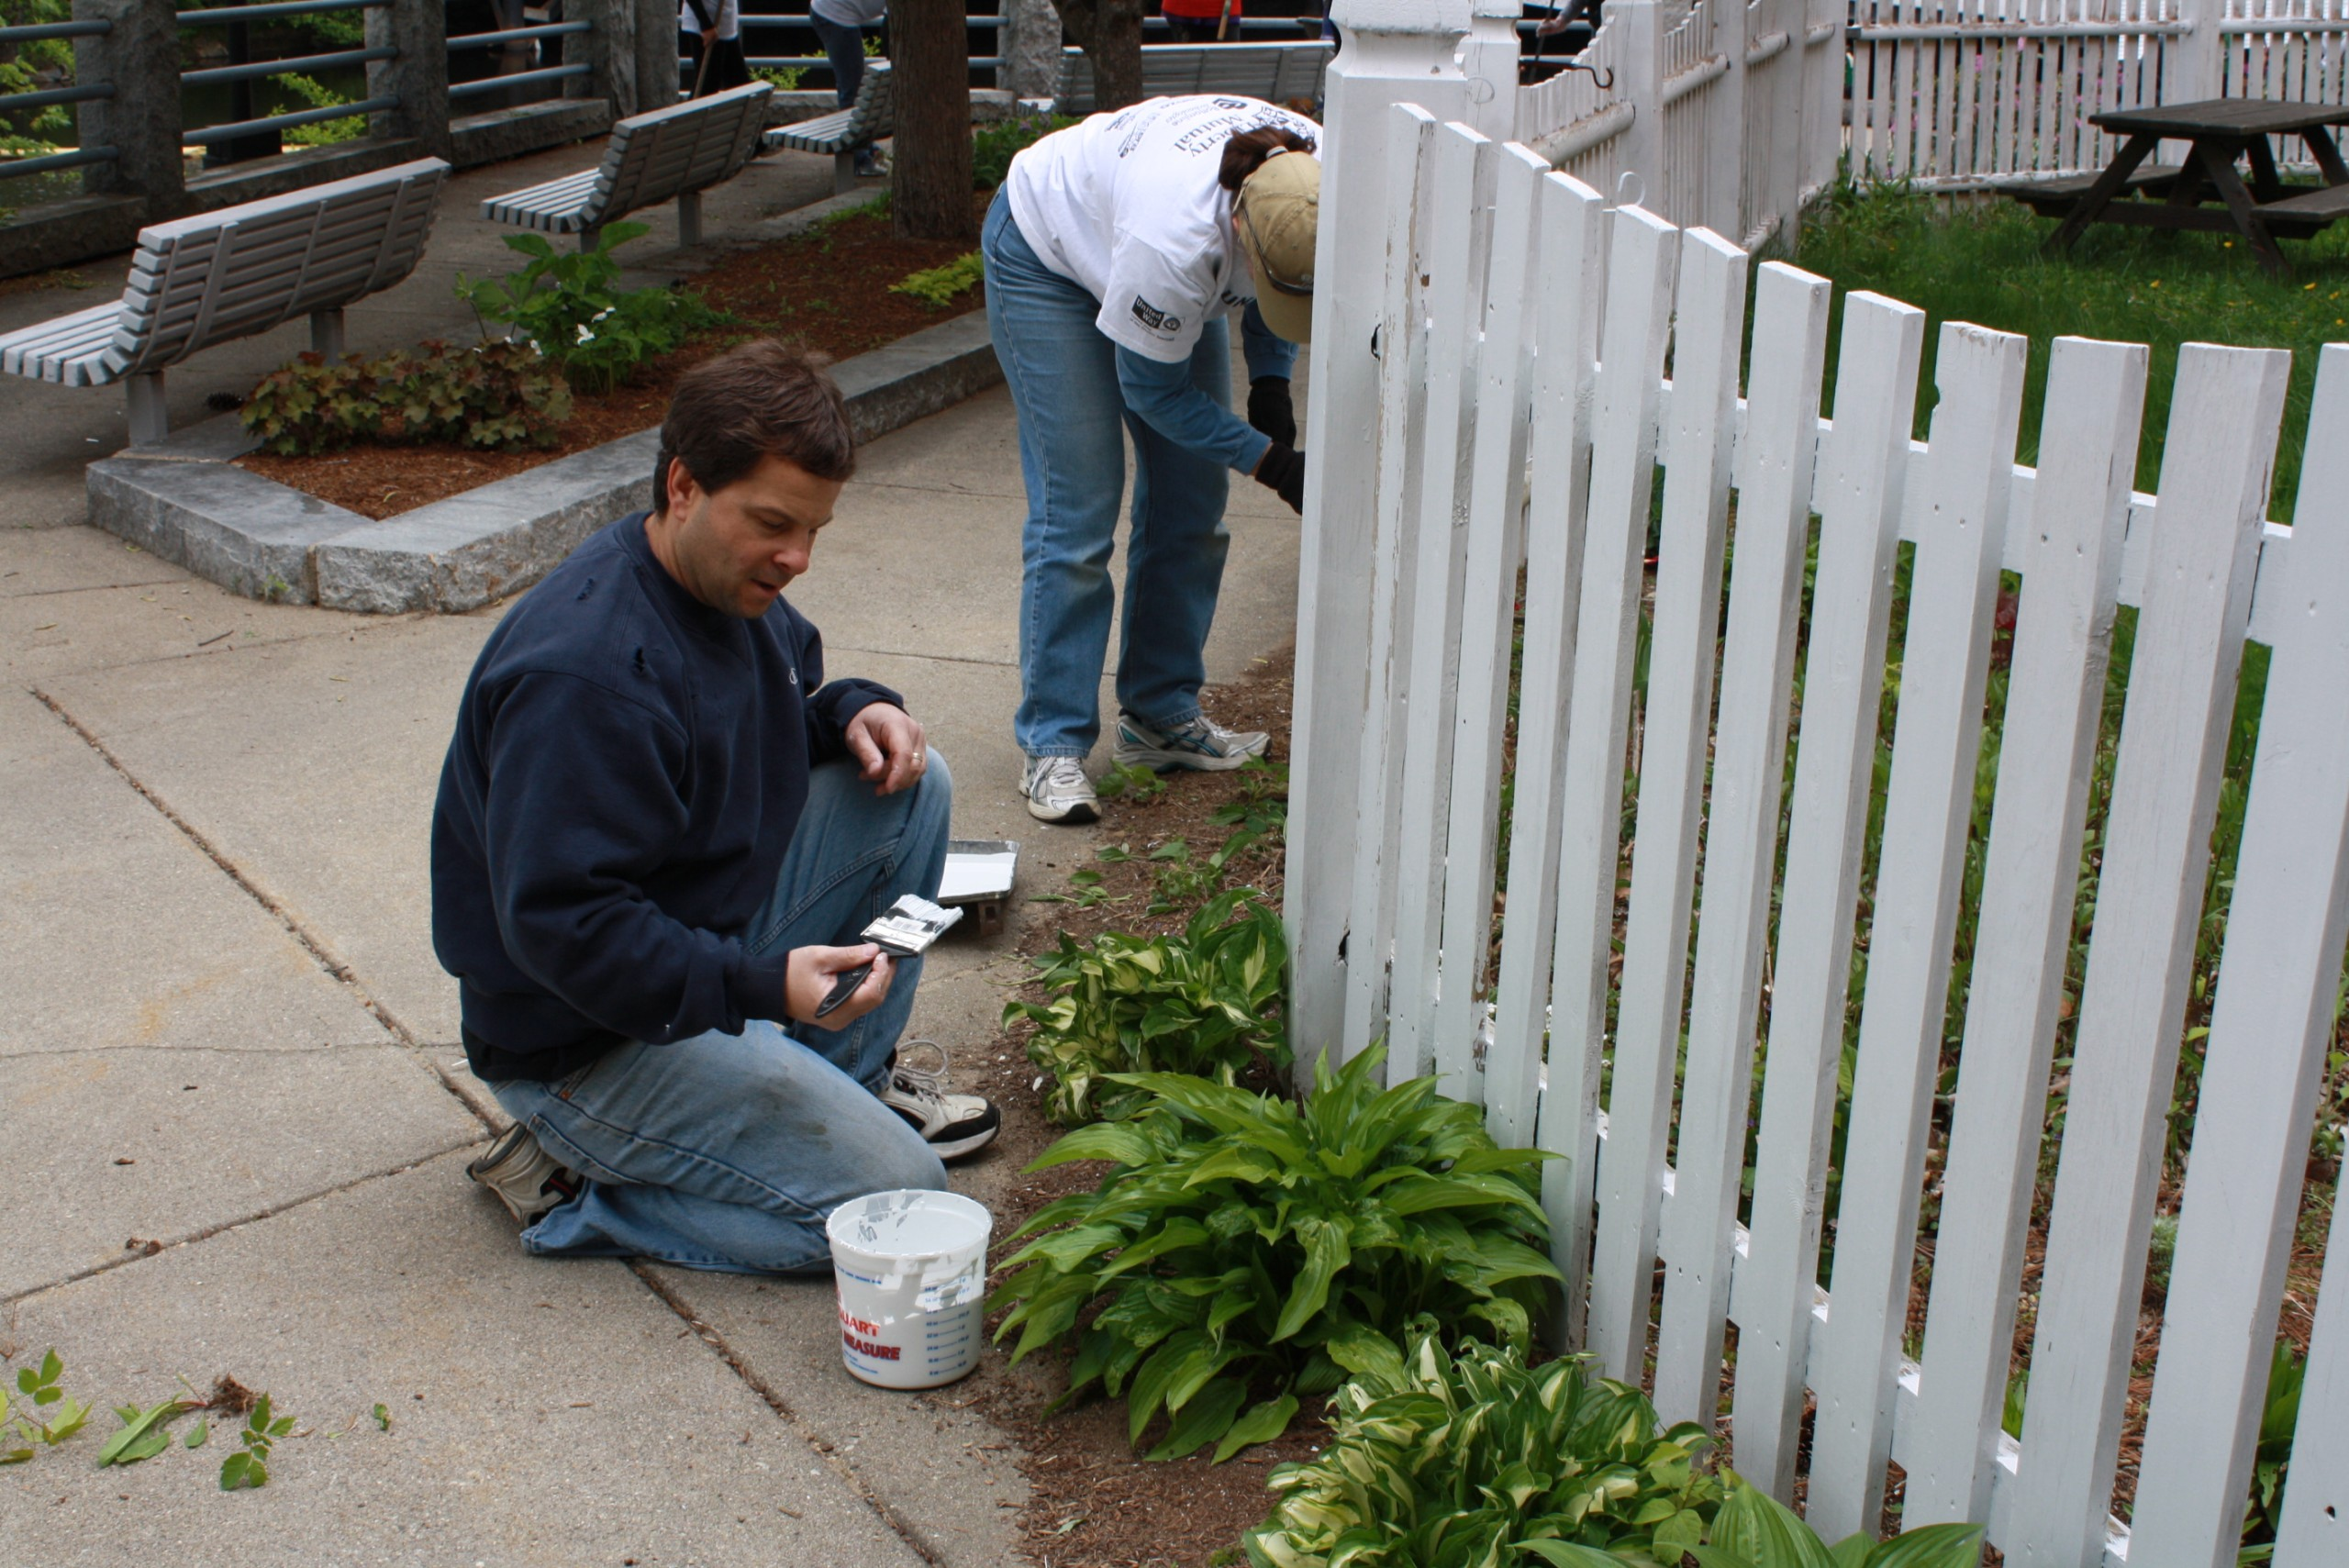 dover-clean-up-day-april-17-2010-008